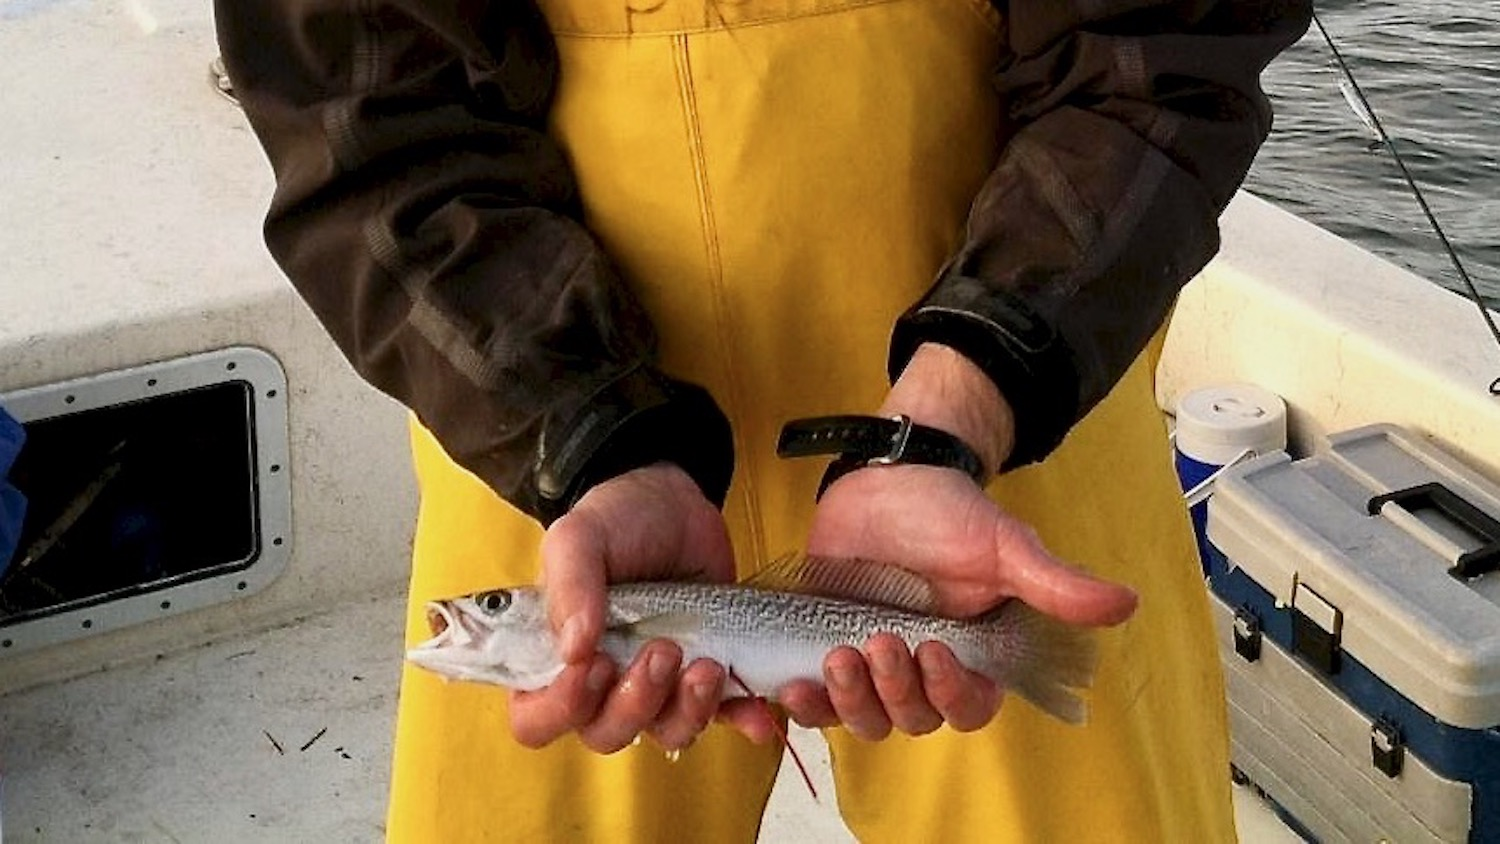 Weakfish caught as part of fisheries research.